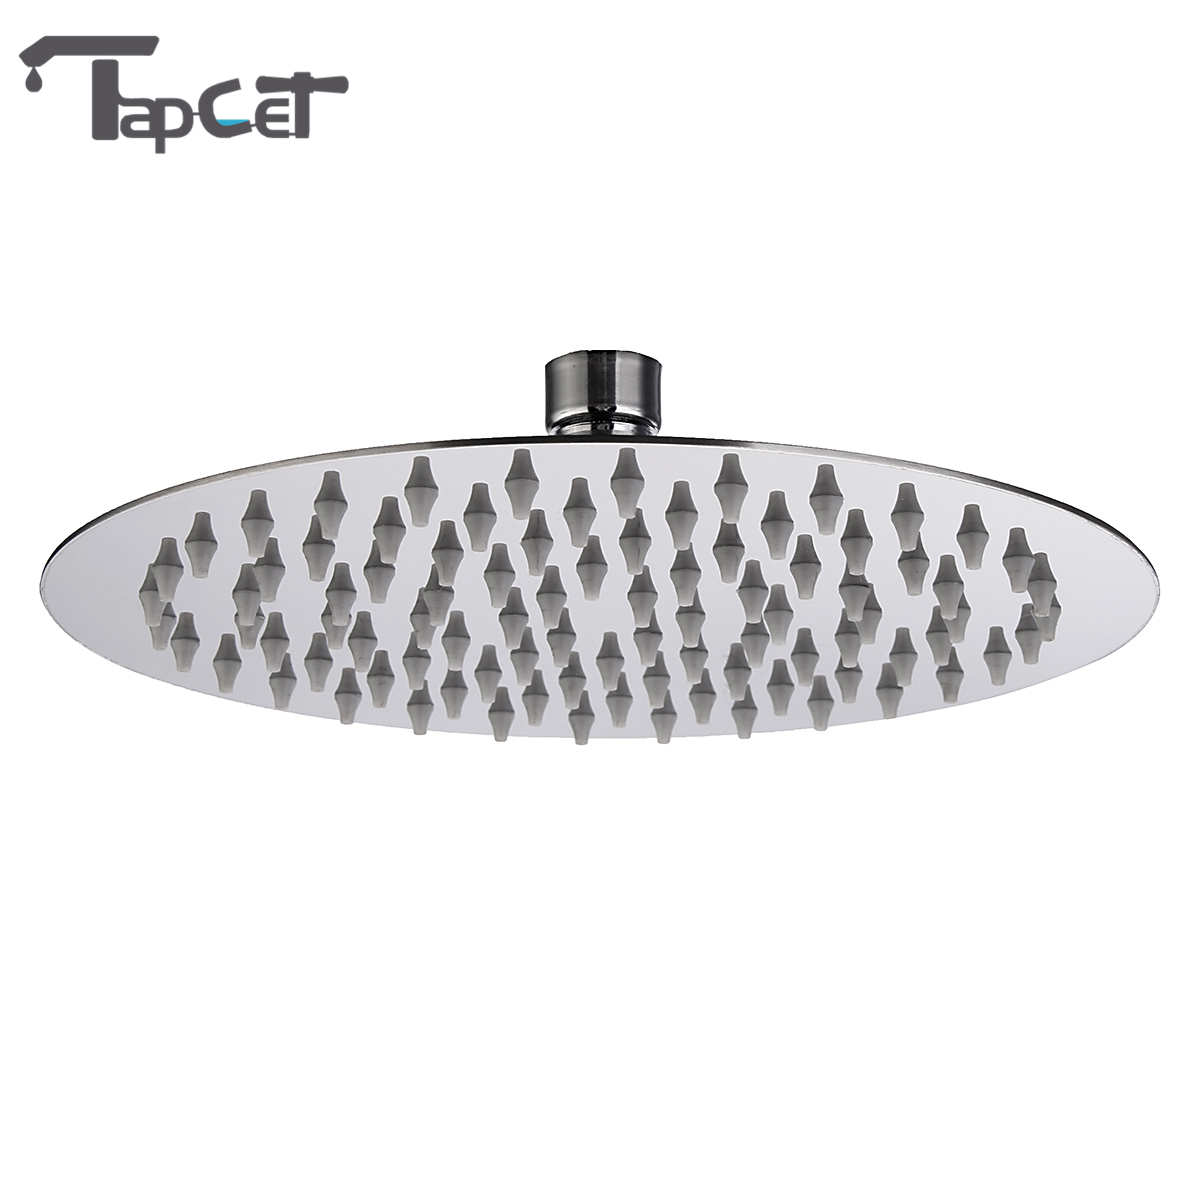 TAPCET 8 Inch Bathroom Rainfall Shower Sprayer Water Saving Stainless Steel Ultra Thin High Pressure Shower Head Top Over Head